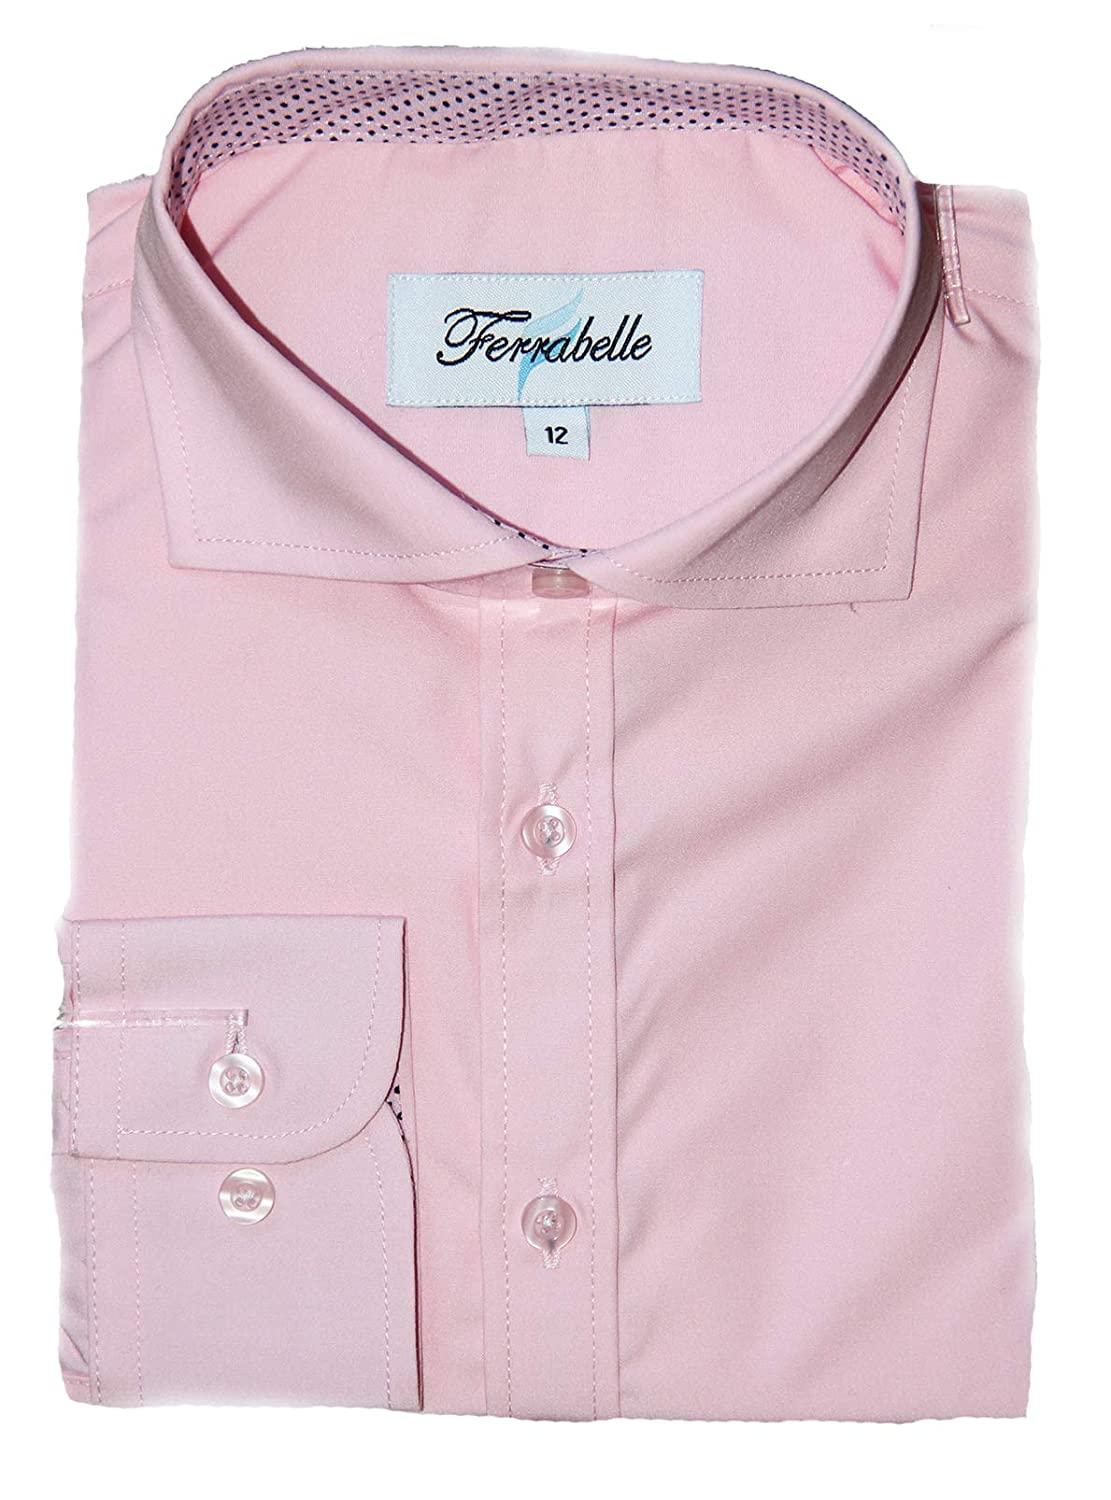 Ferrabelle Boys Solid Dress Shirt - Button Down Long Sleeve with Trim